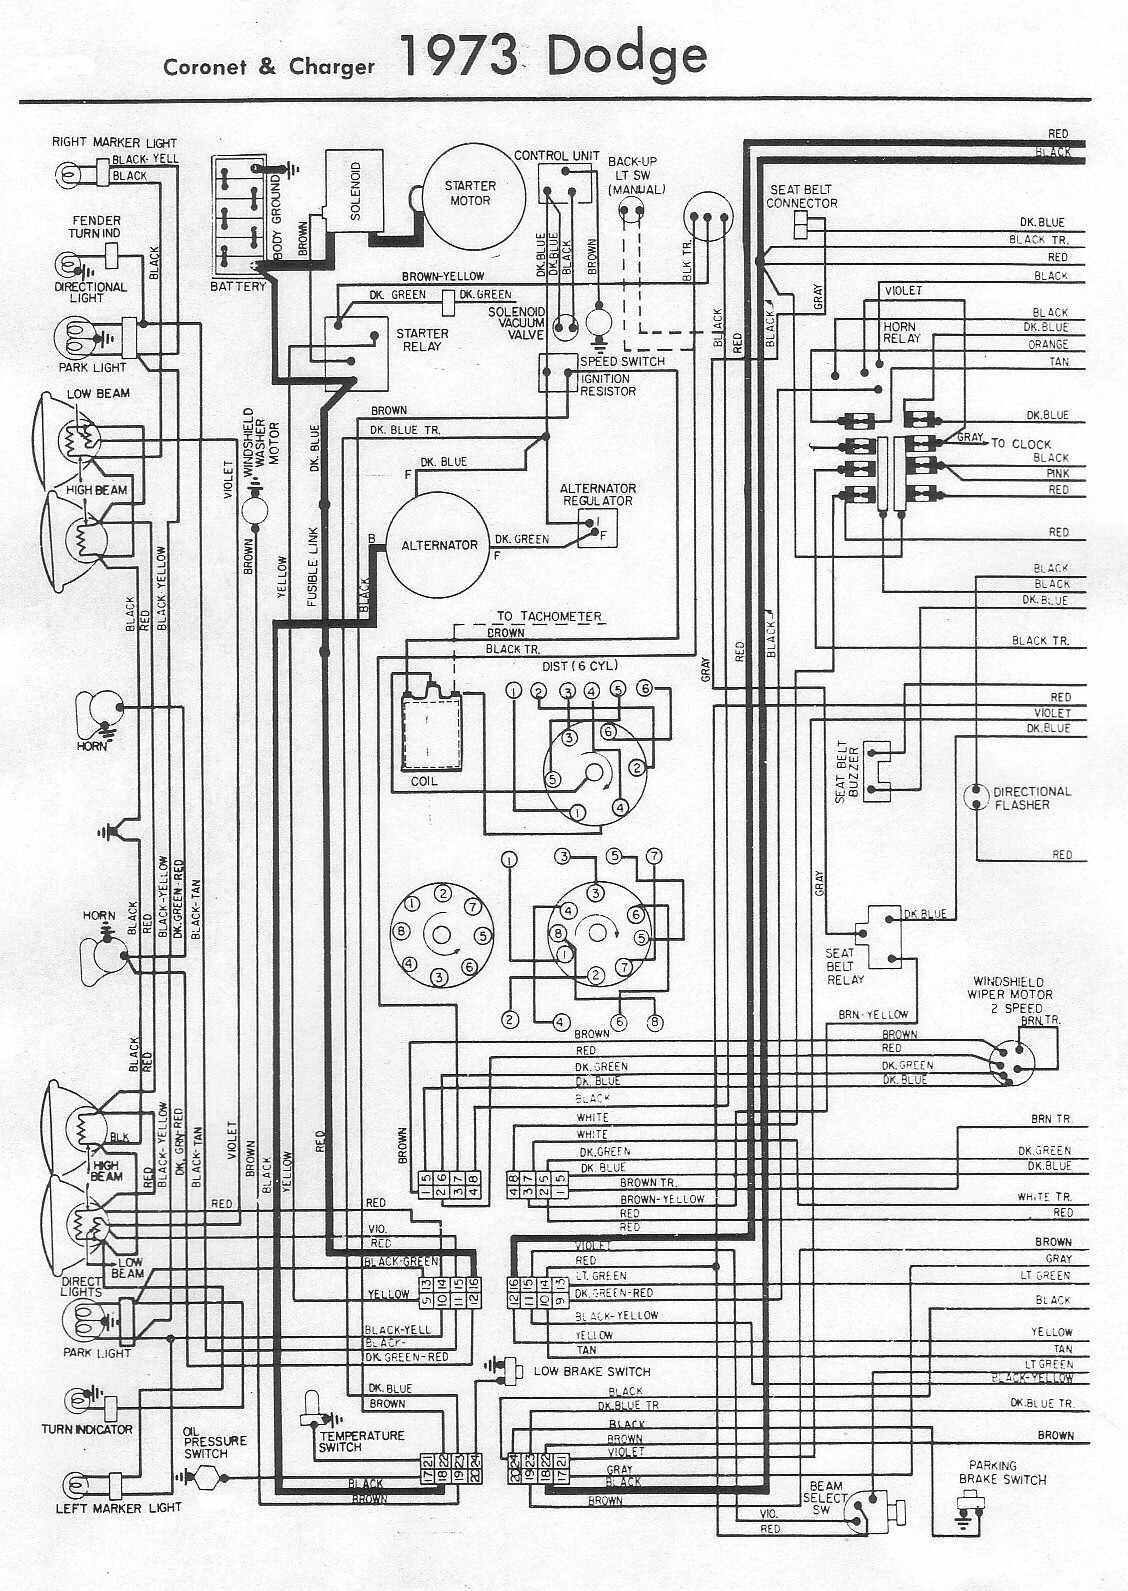 Dodge Durango Wiring Diagram Free Download Wiring Diagram Schematic